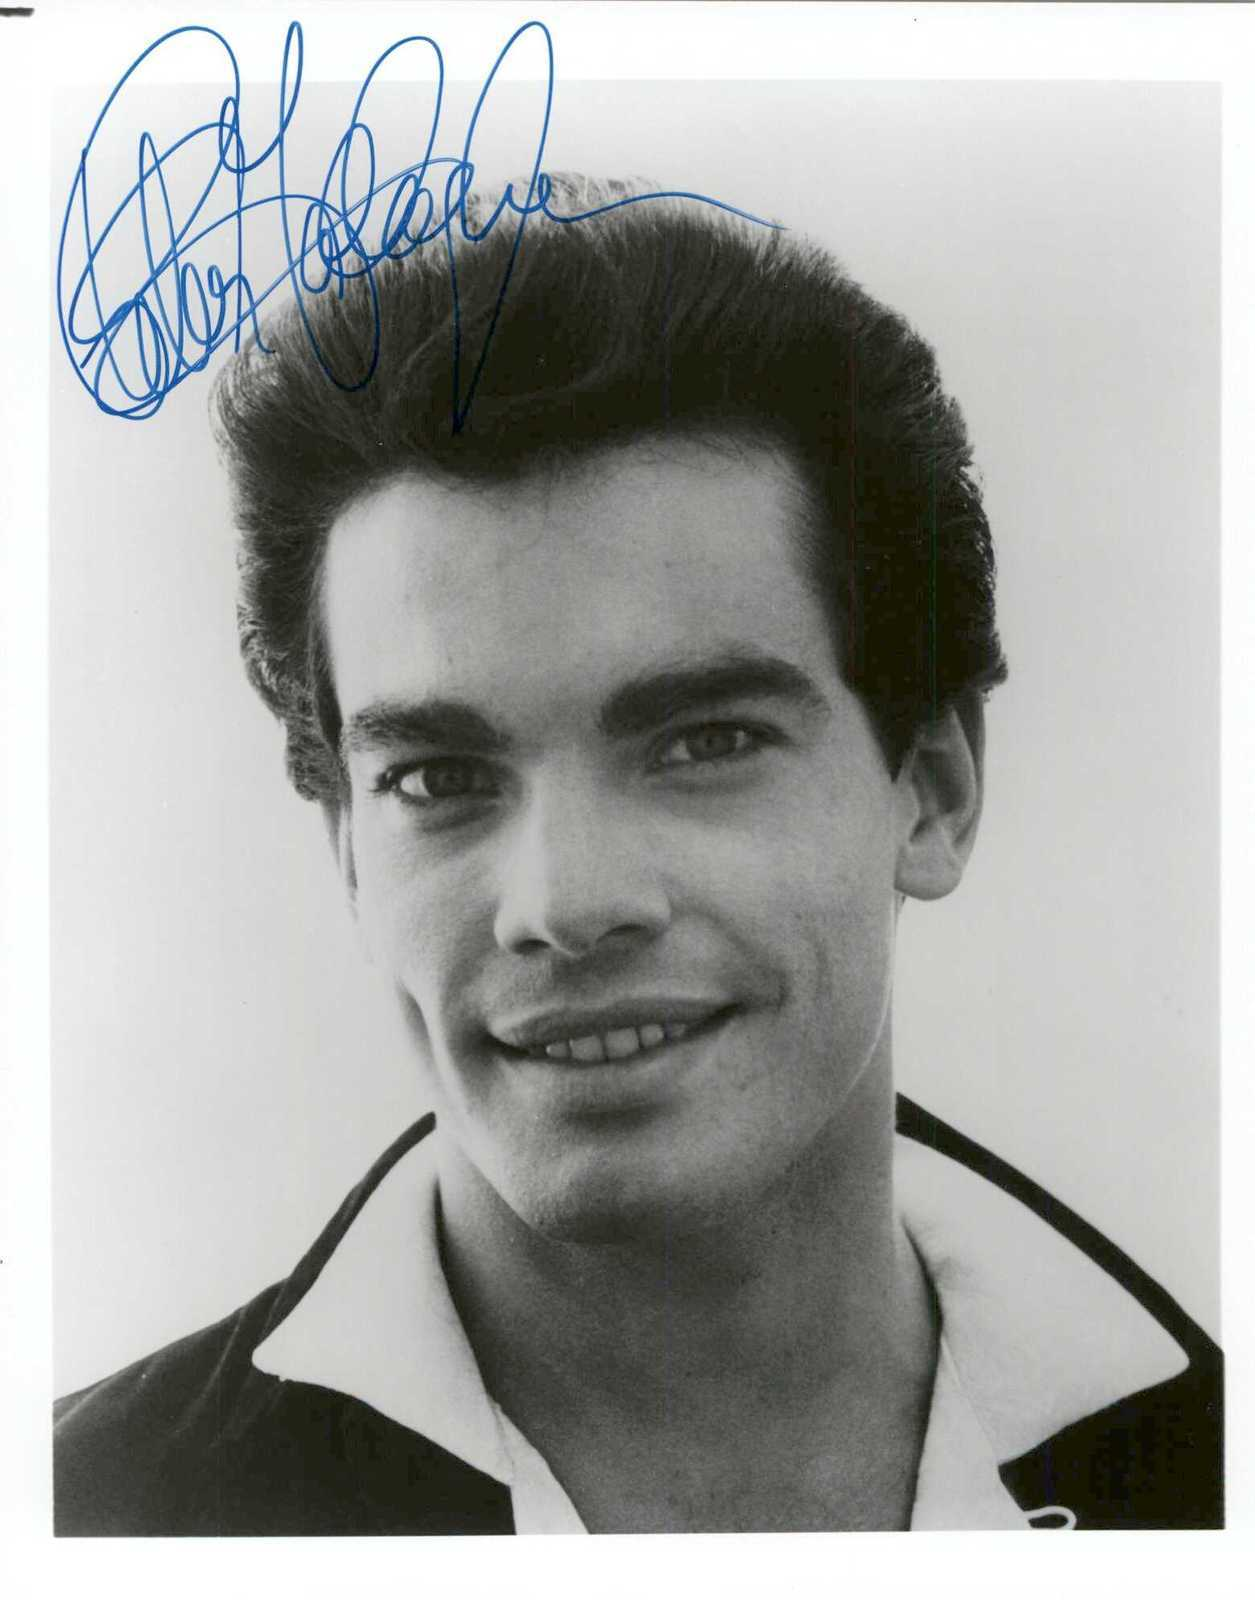 Primary image for Peter Gallagher Signed Autographed Glossy 8x10 Photo